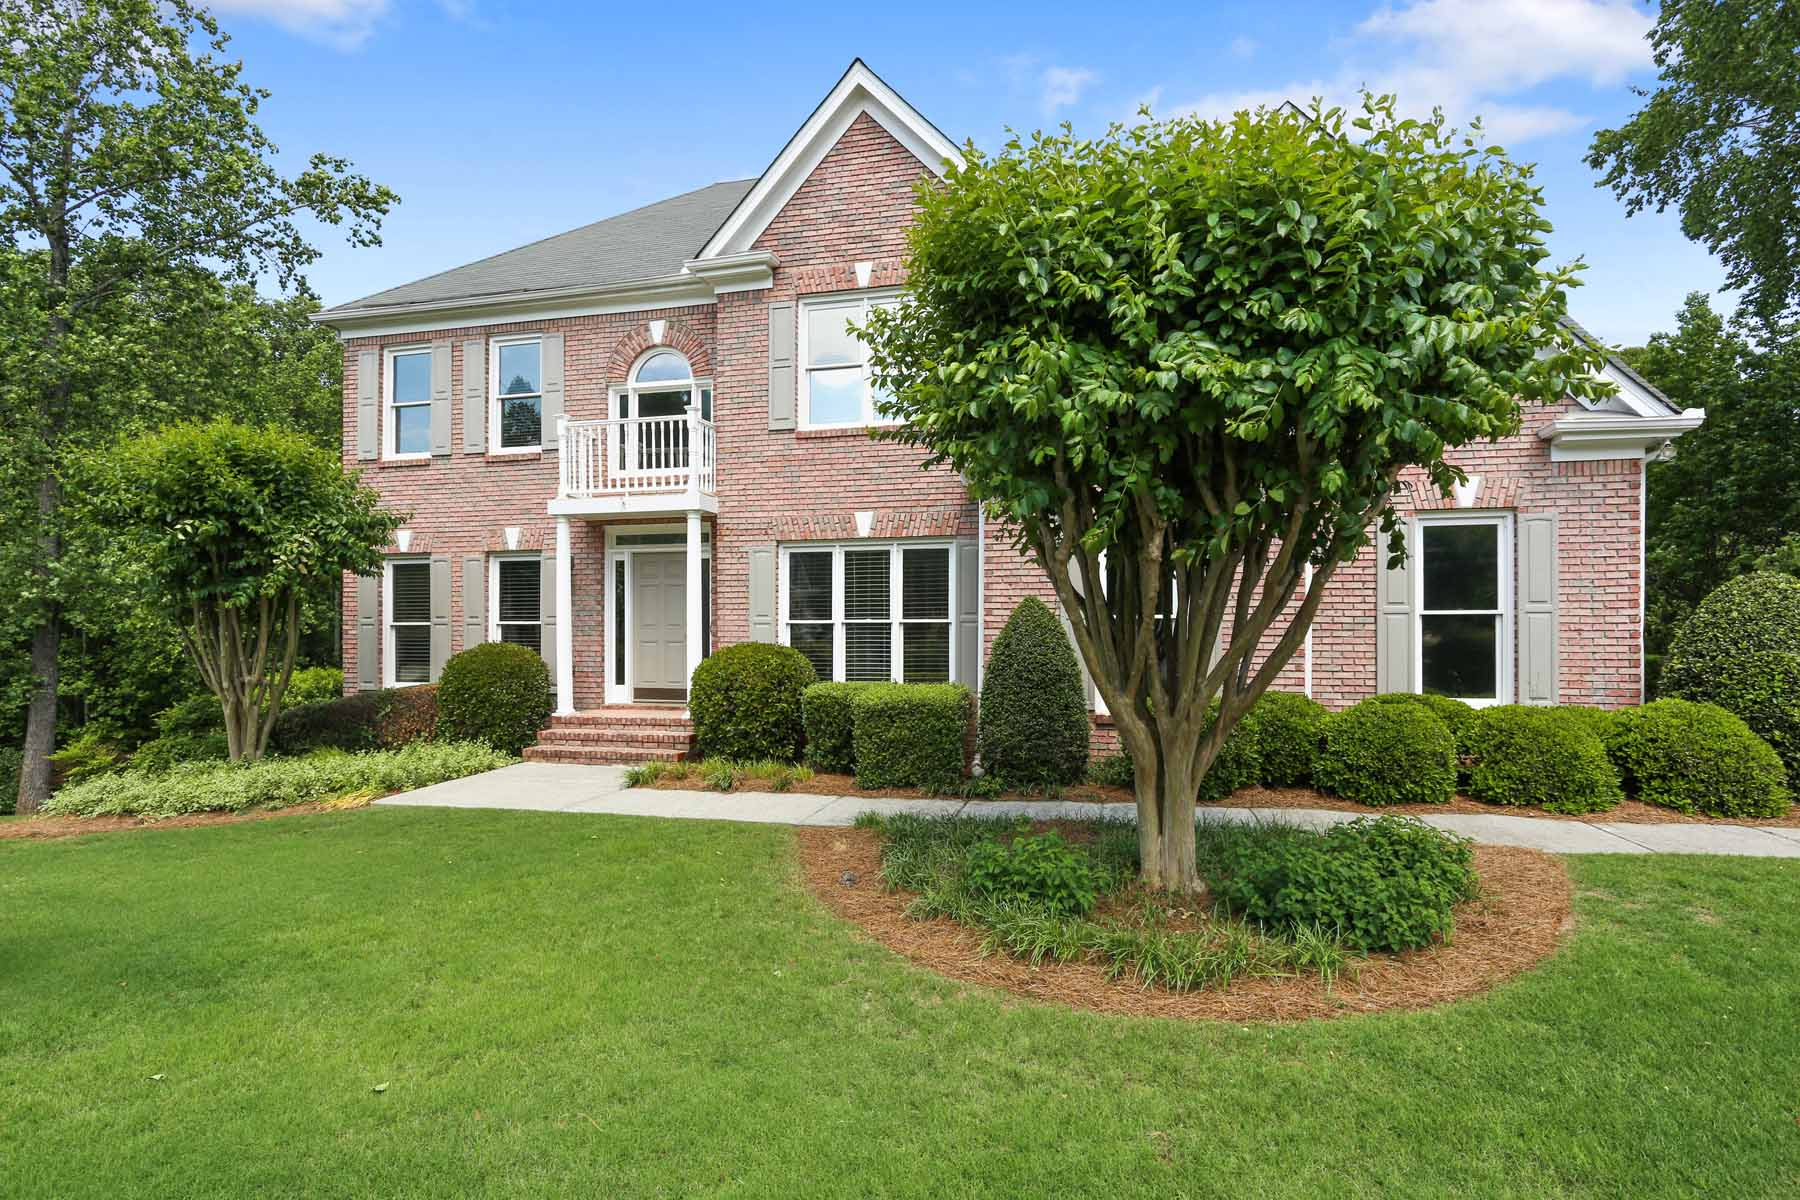 Single Family Home for Sale at Beautiful Four-Side Brick Home 2922 Mill Park Court Dacula, Georgia, 30019 United States